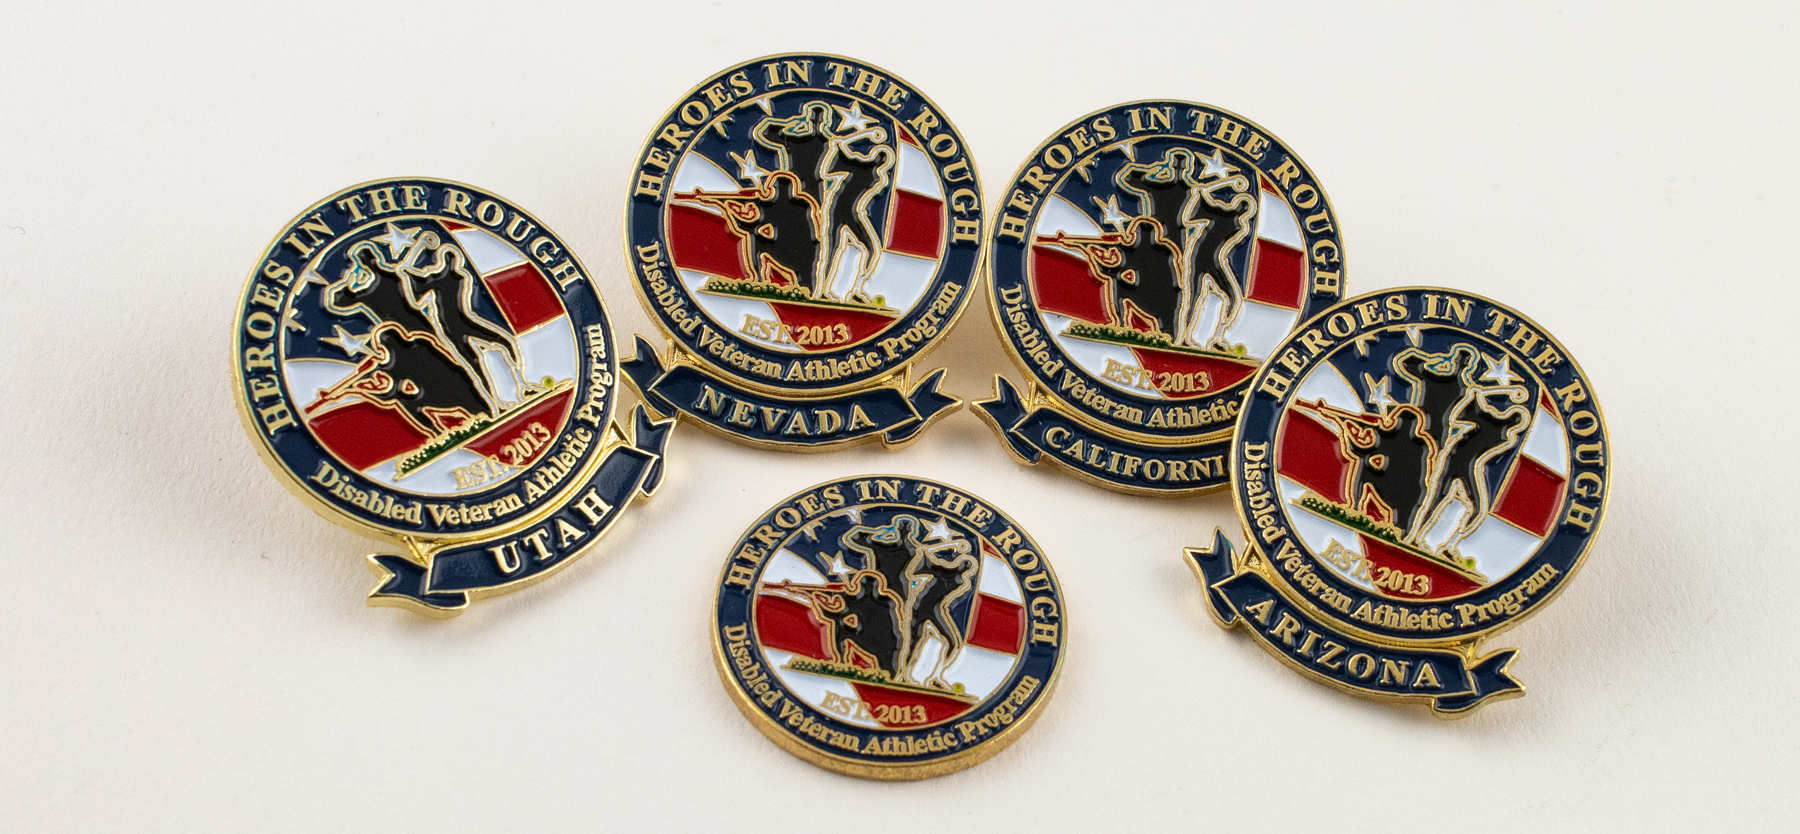 custom-golf-ball-marker-lapel-pin-heroes-in-thee-rough-charity-signature-coins